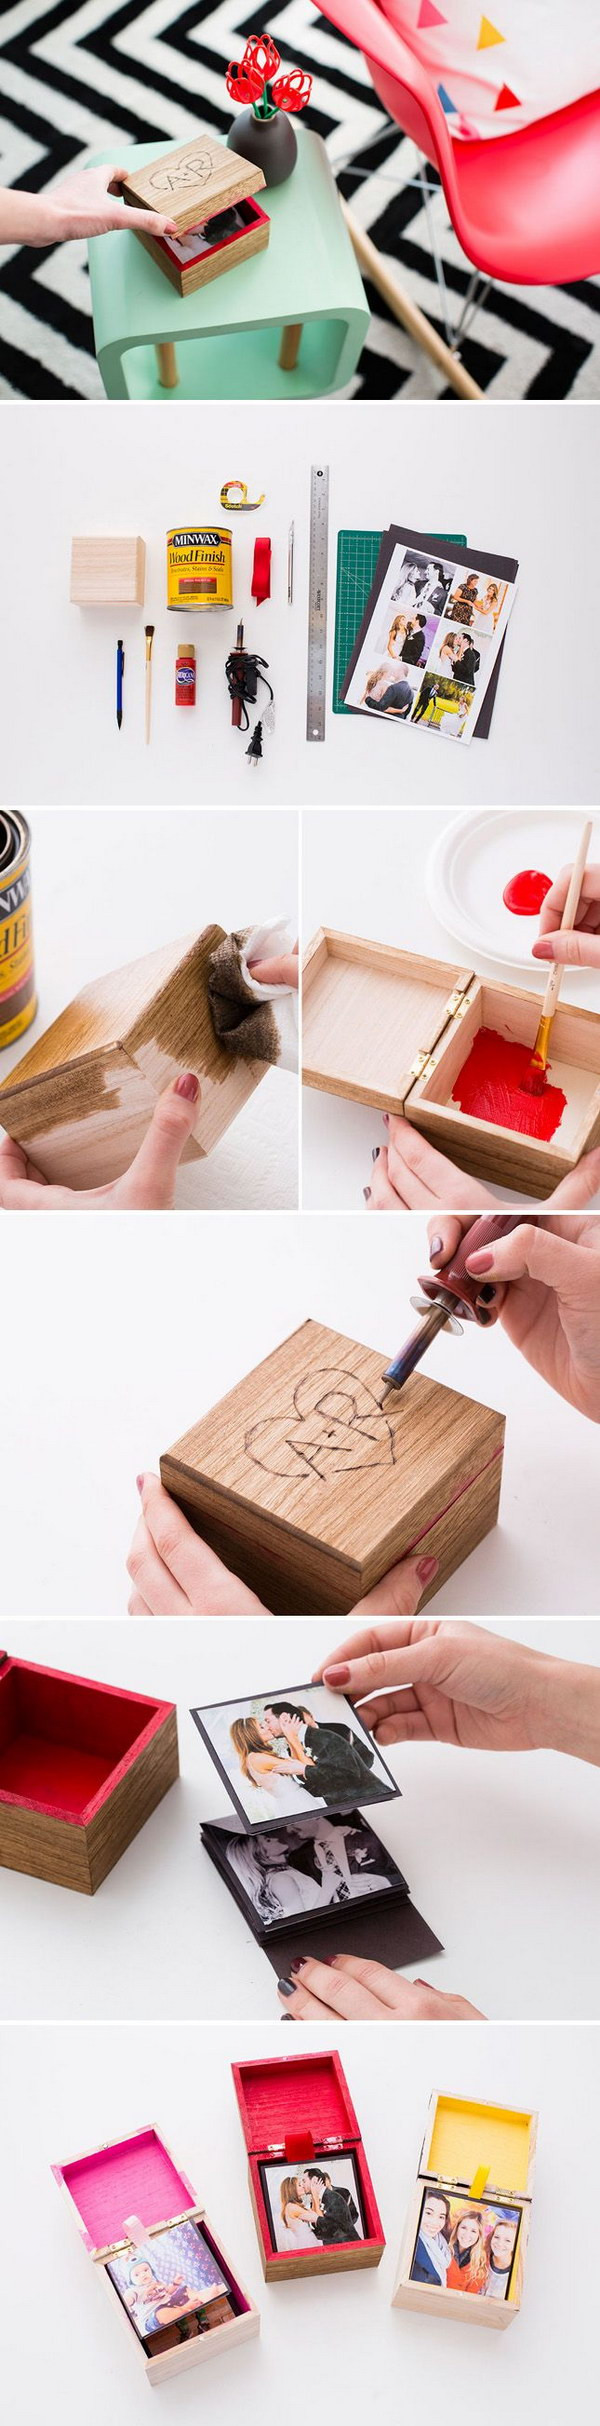 DIY Gifts For Him  25 DIY Gifts for Him With Lots of Tutorials 2017